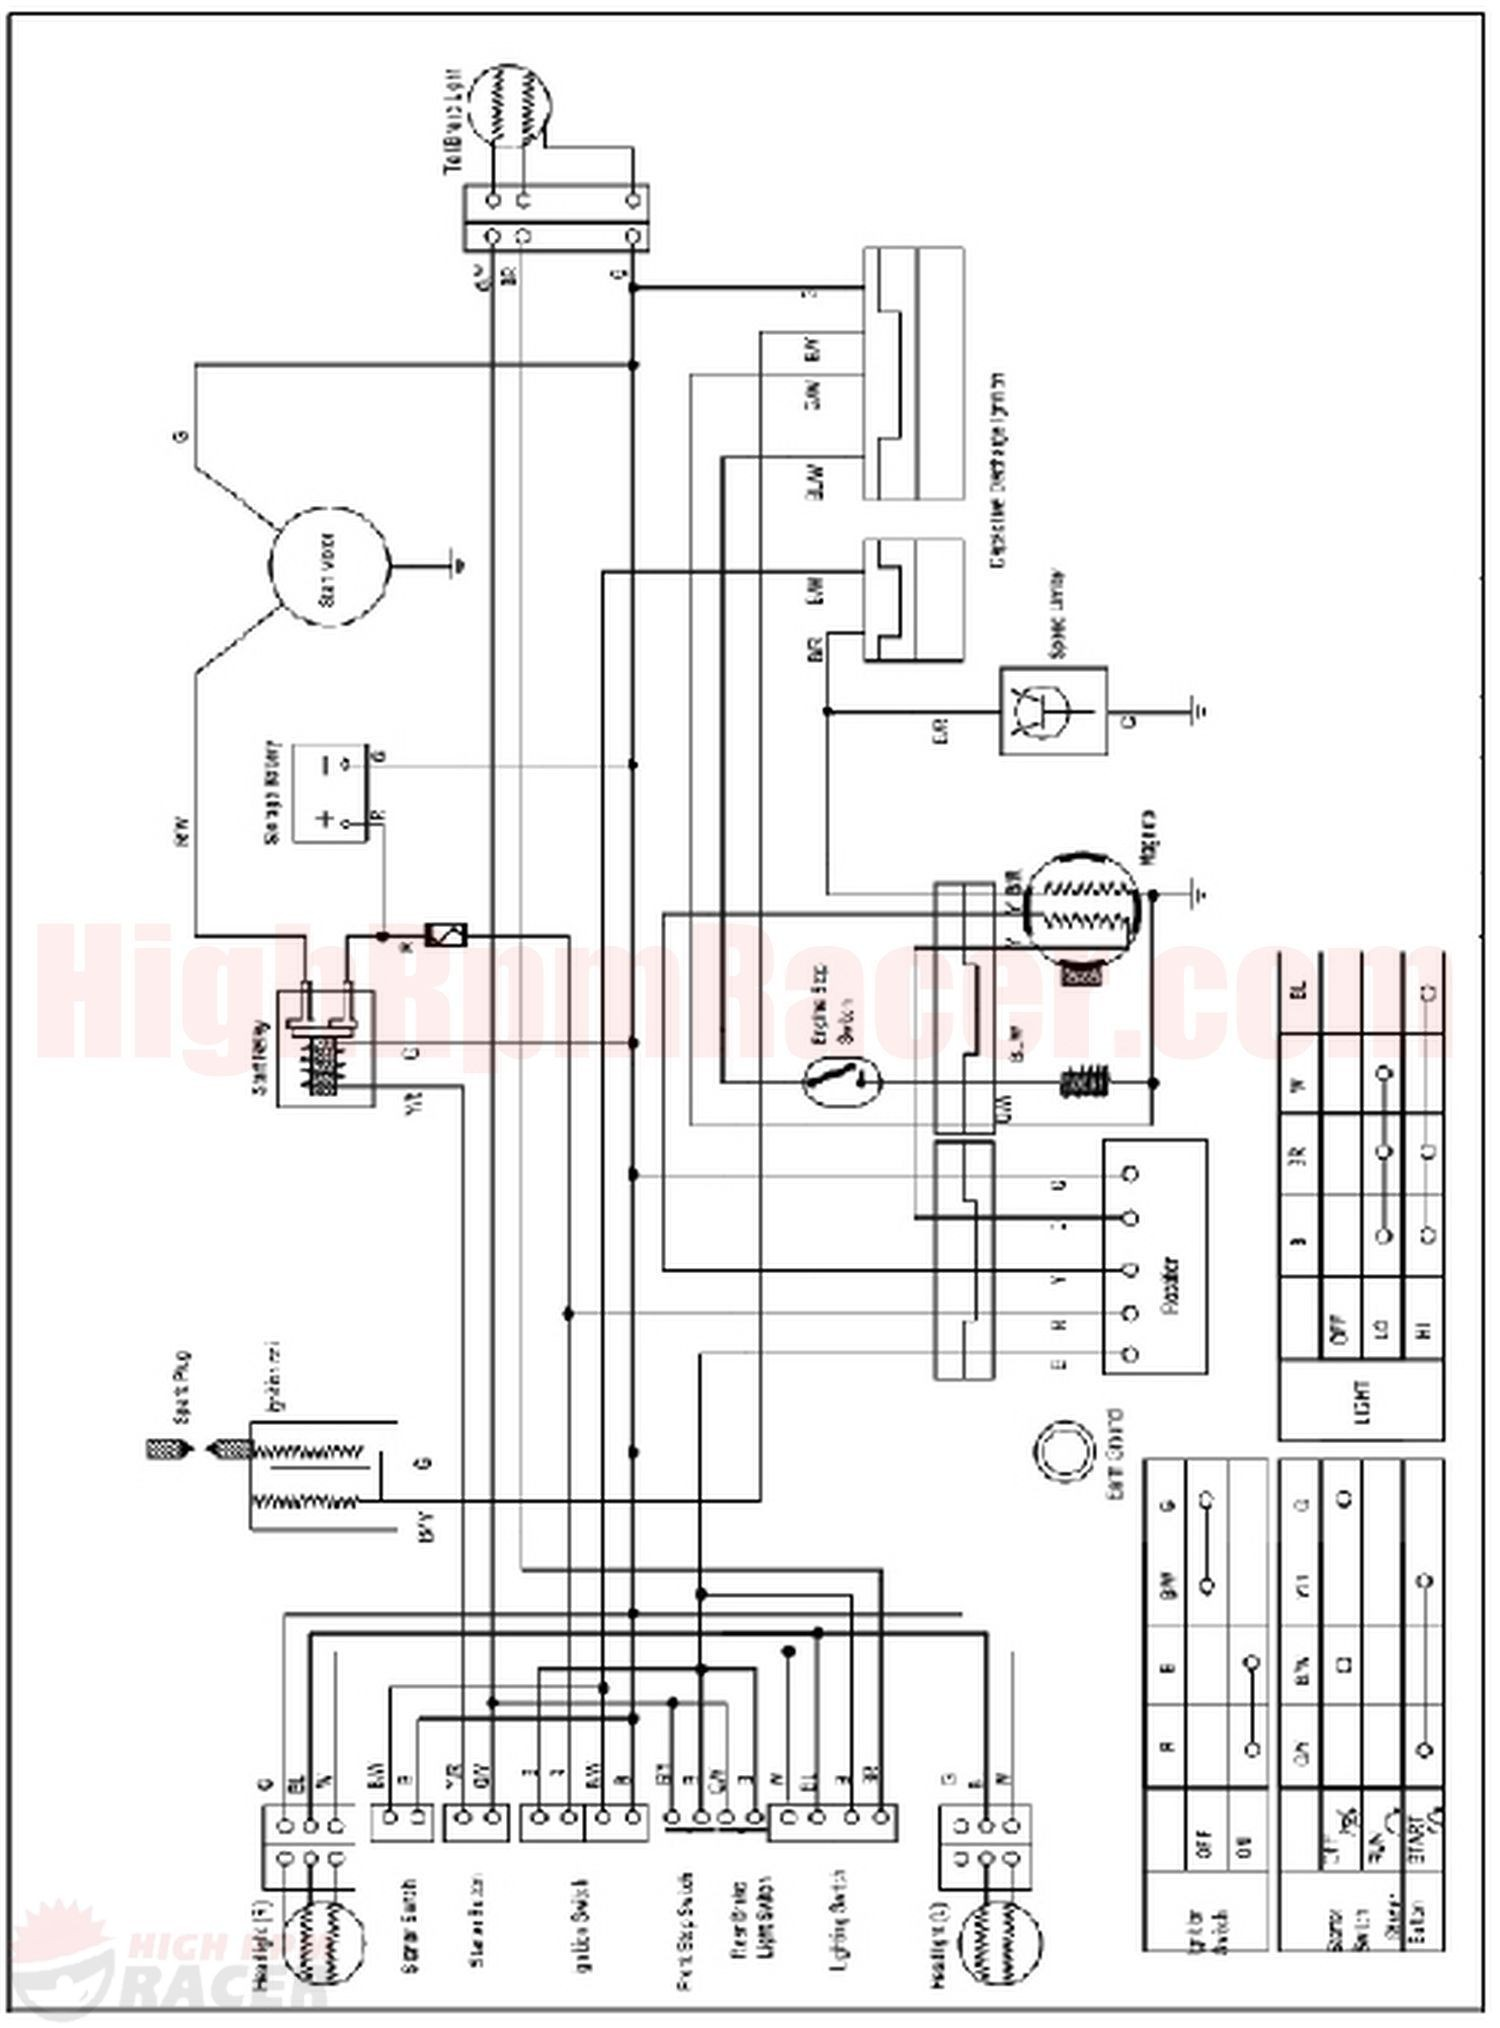 BE_3493] Eton Viper 50 Parts Diagram Printable Wiring Diagram Schematic  Schematic WiringNnigh Benkeme Mohammedshrine Librar Wiring 101